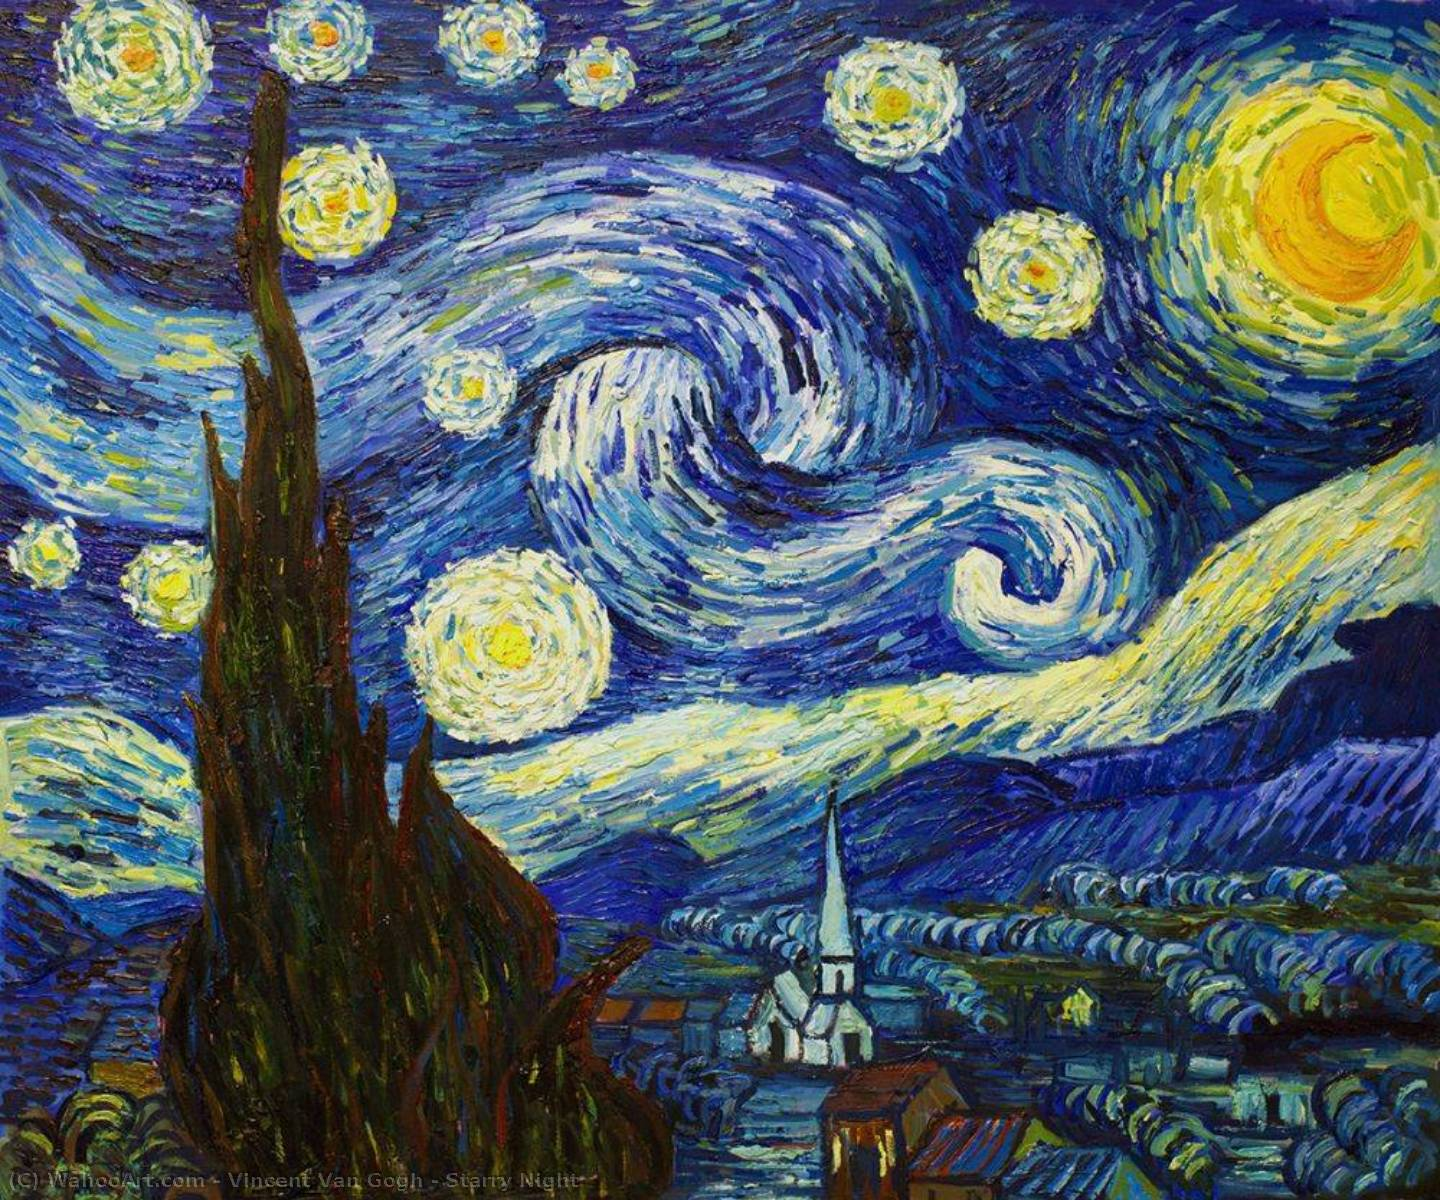 Order Art Reproductions | Starry Night by Vincent Van Gogh | Most-Famous-Paintings.com